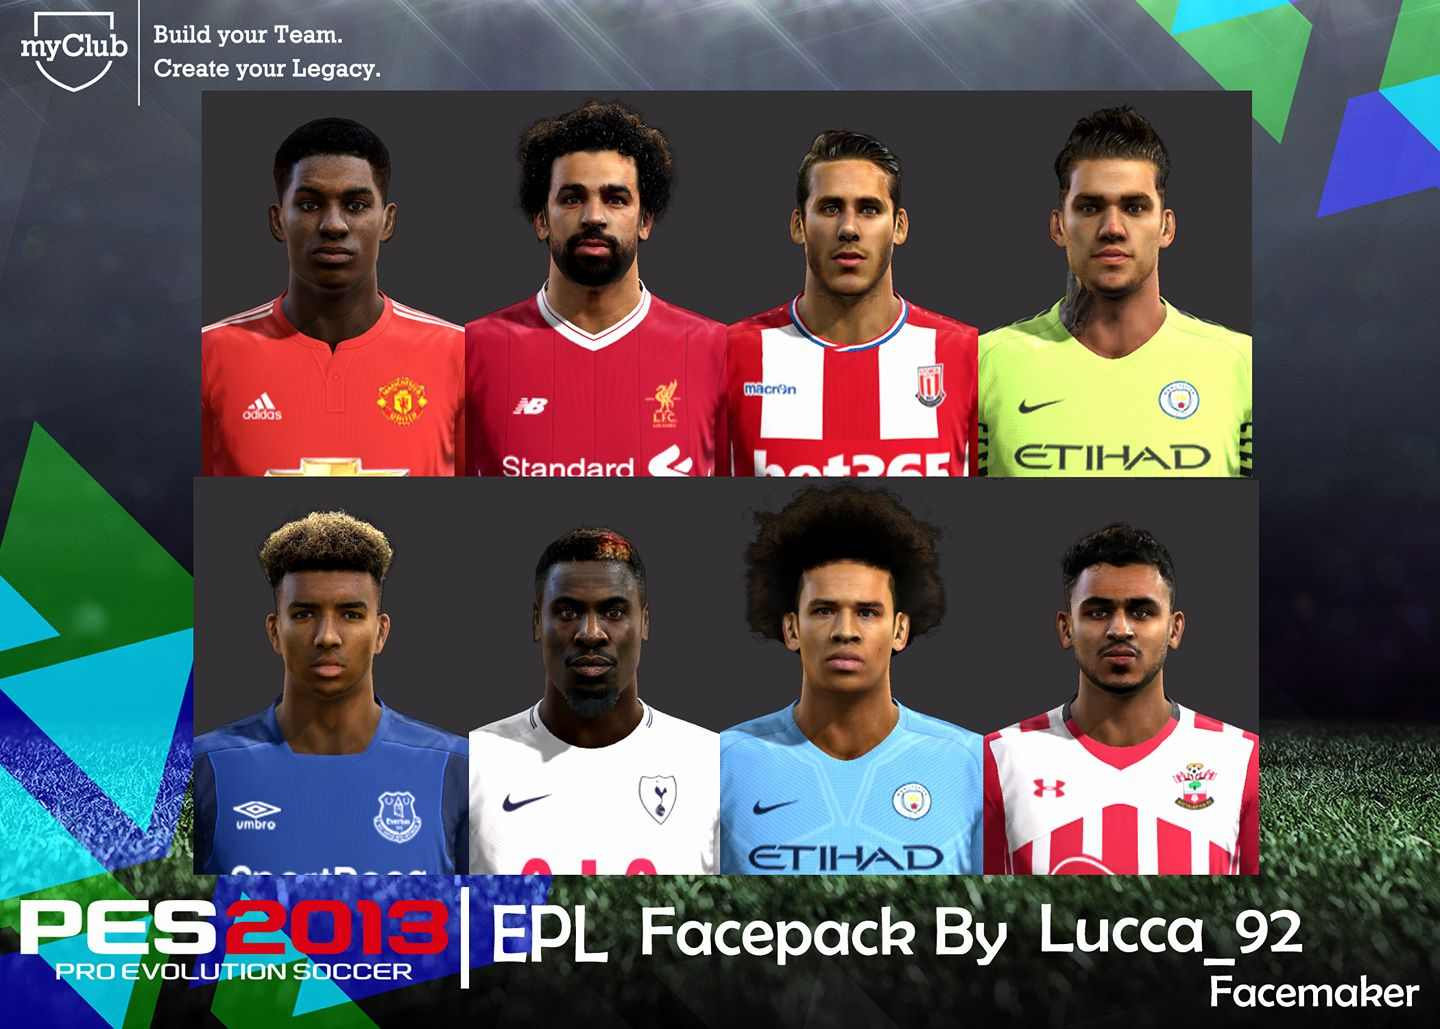 PES 2013 EPL Face-Pack 20.12.2017 66f49d2bf